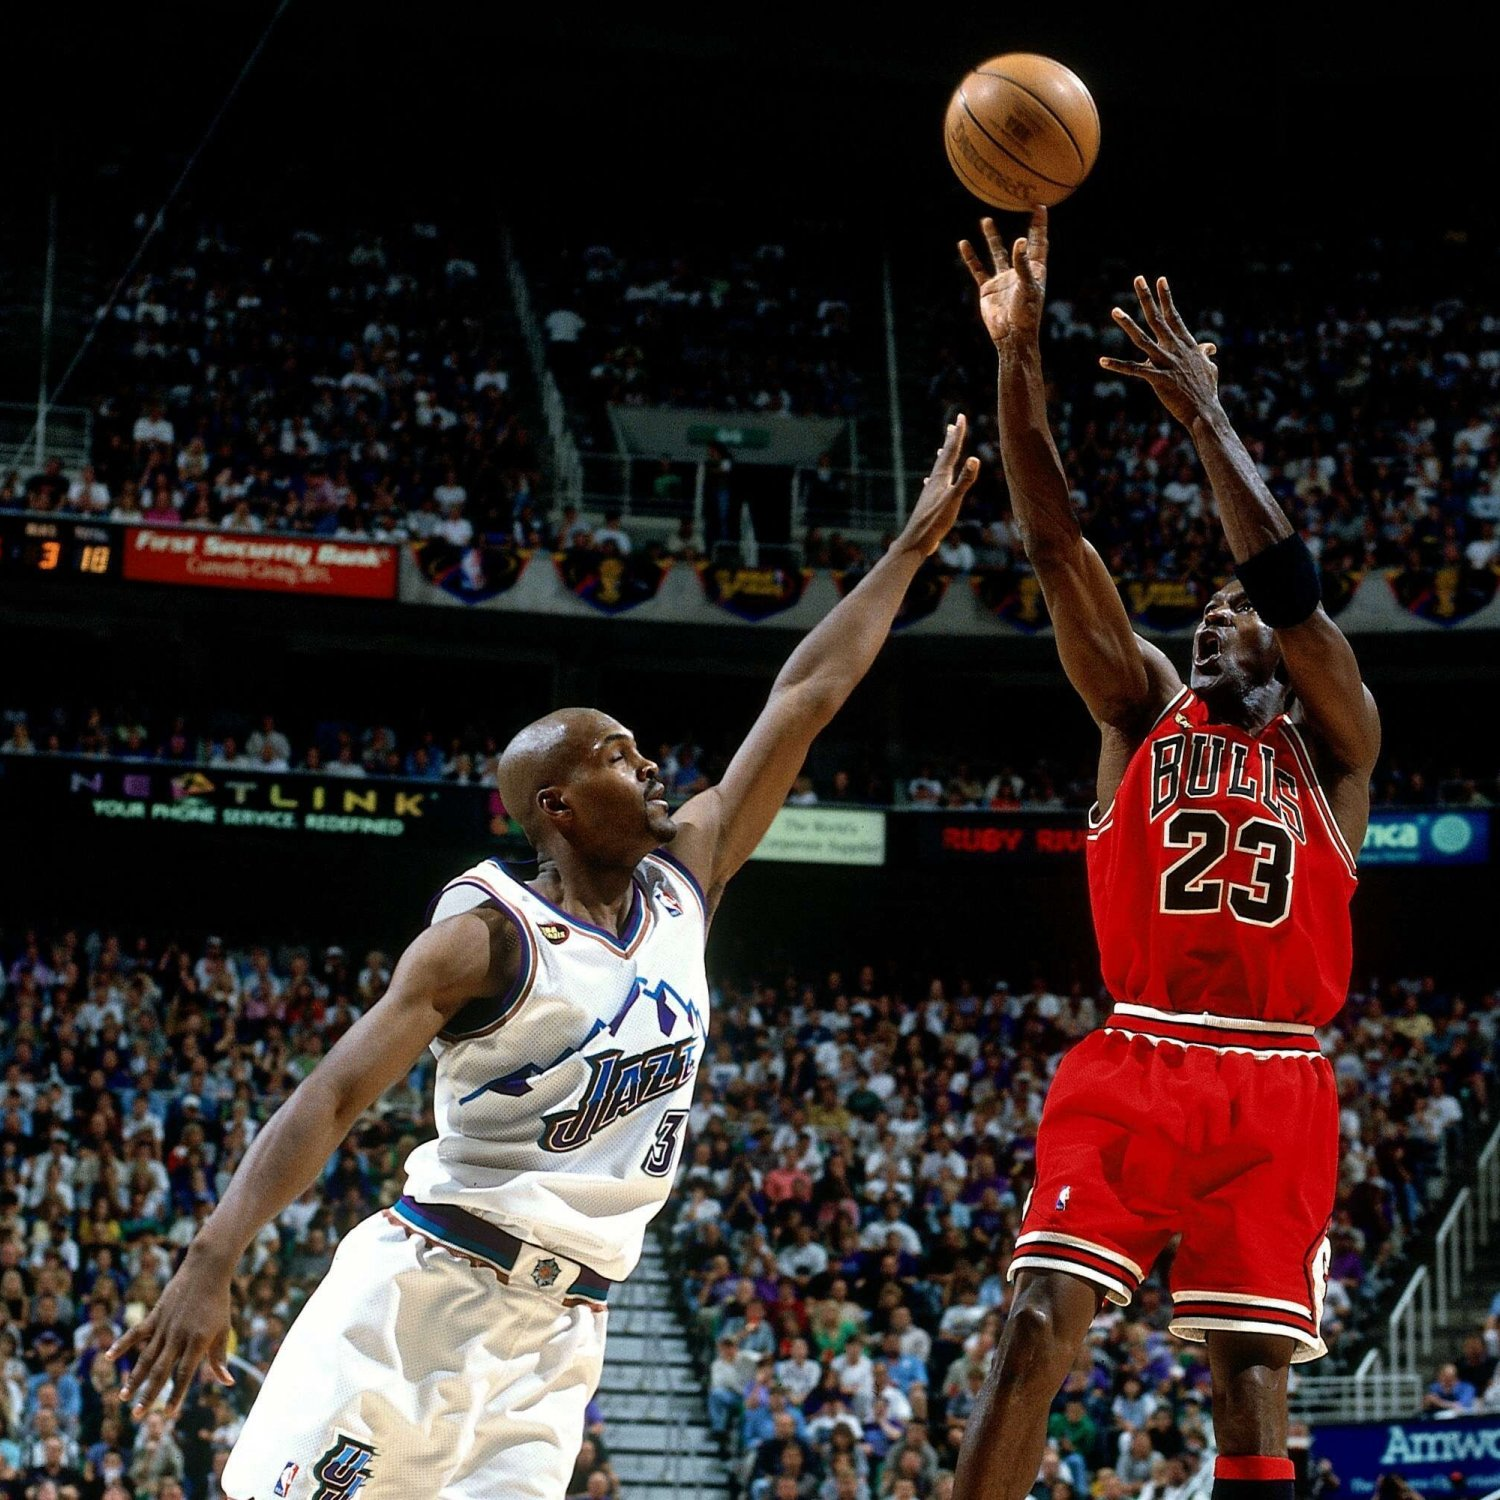 THE ART AND SCIENCE OF SHOOTING A BASKETBALL